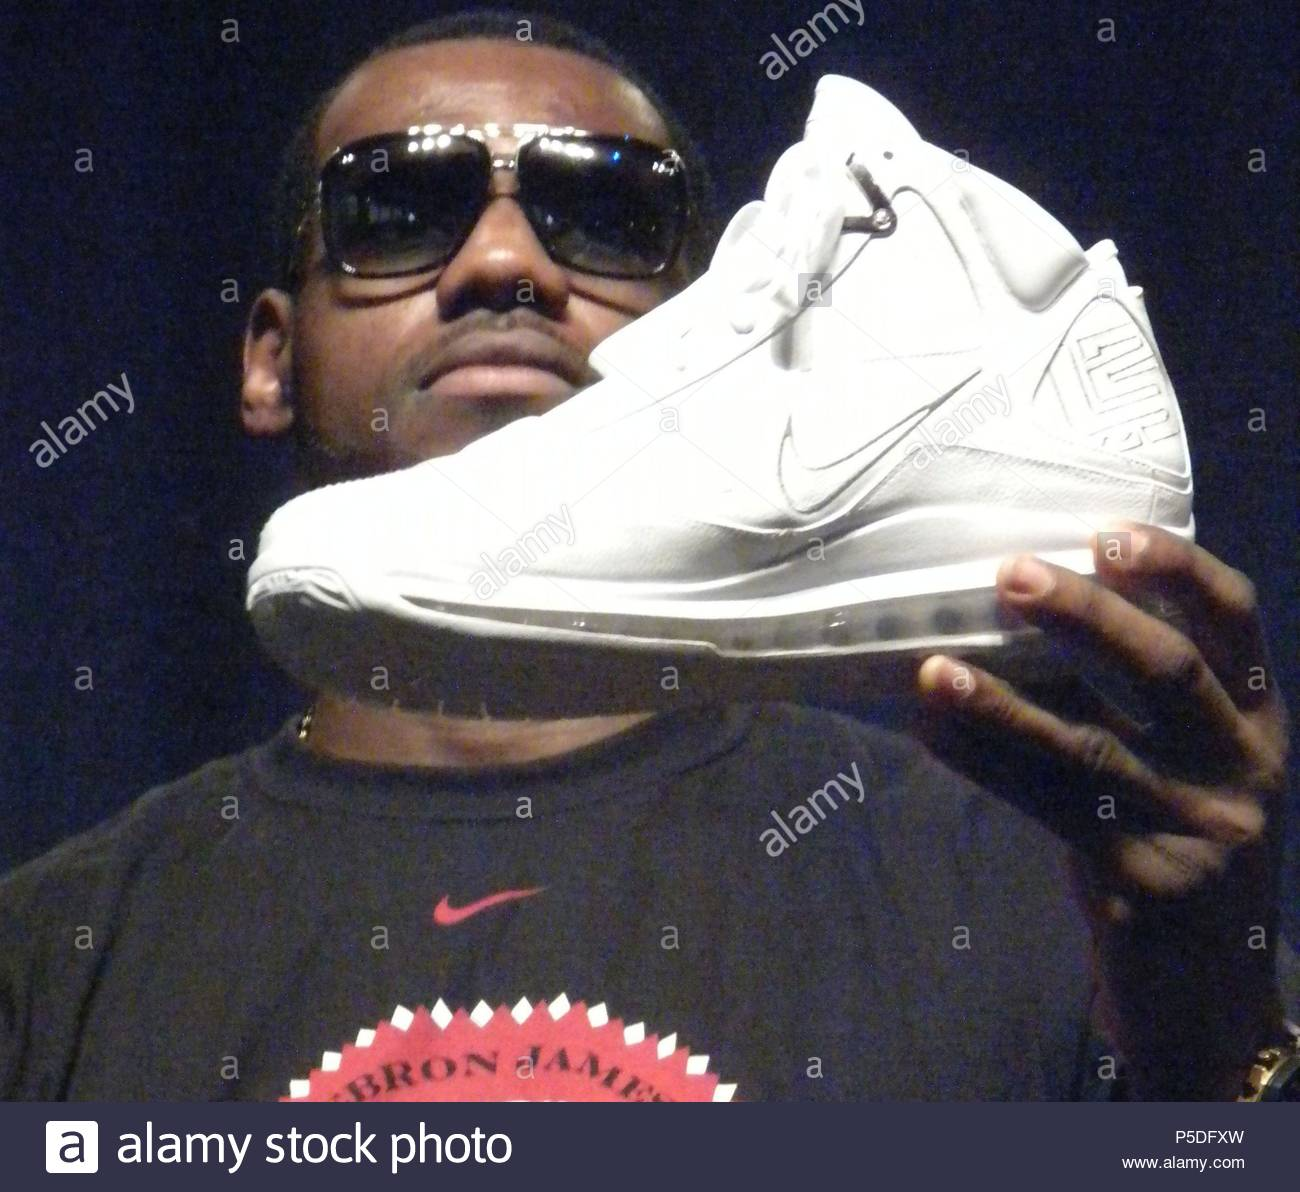 5ea4320a5483 ... new arrivals lebron james. lebron james signs lifetime endorsement deal  with nike stock image file